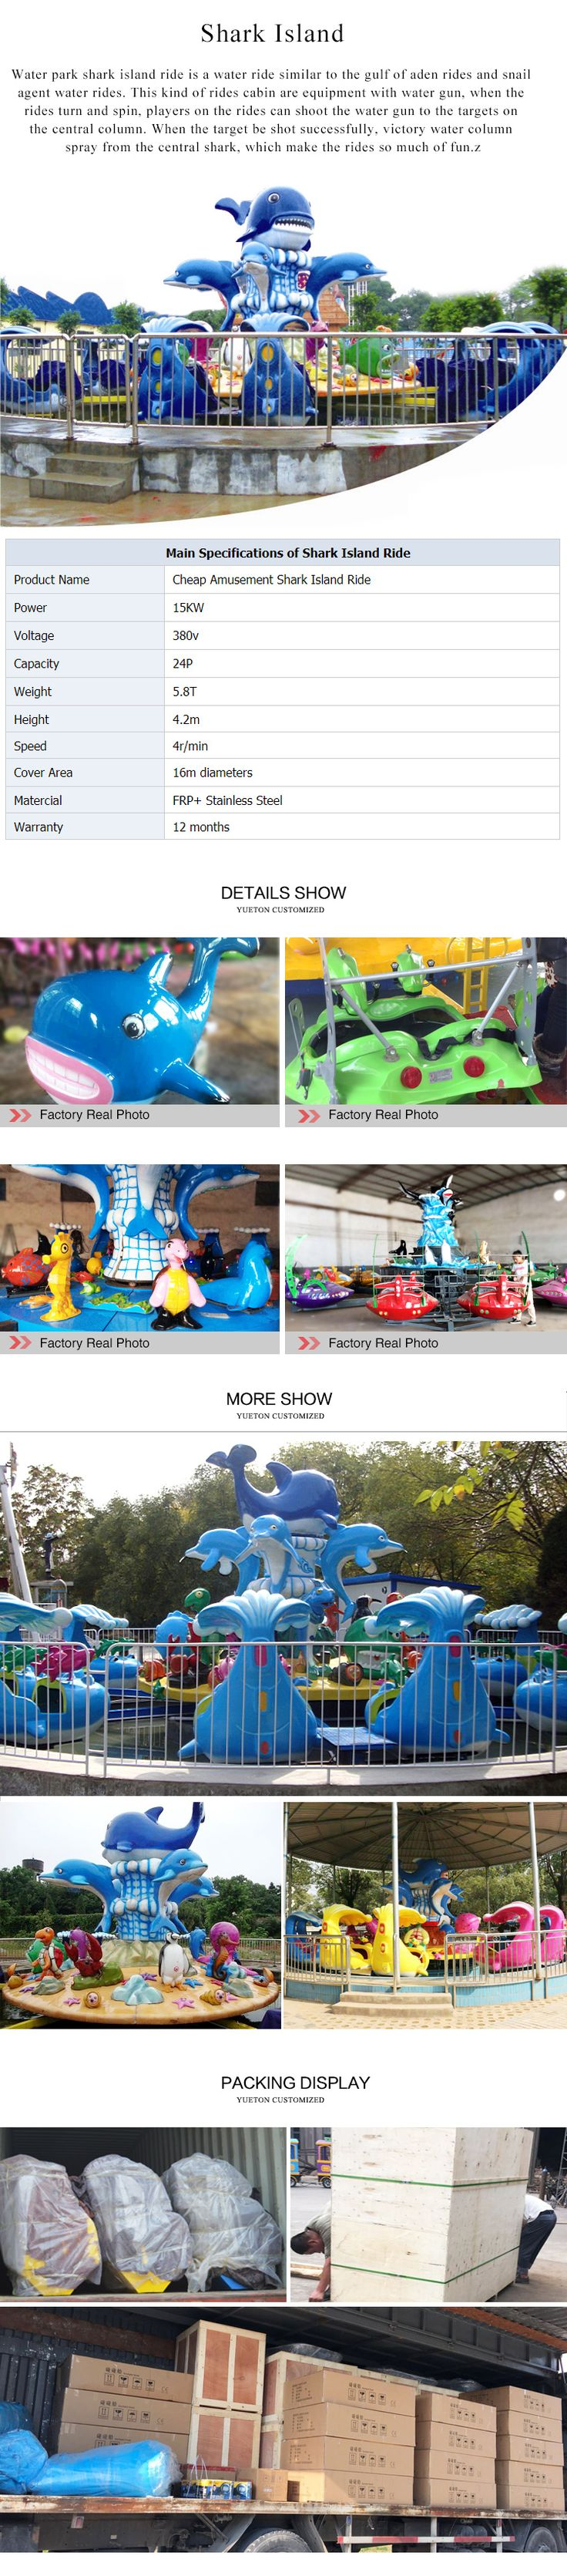 Shark Island water rides from Zhengzhou Yueton Amusement Contact: Abby Whatsapp: 008615639085024 www.yuetonrides.com